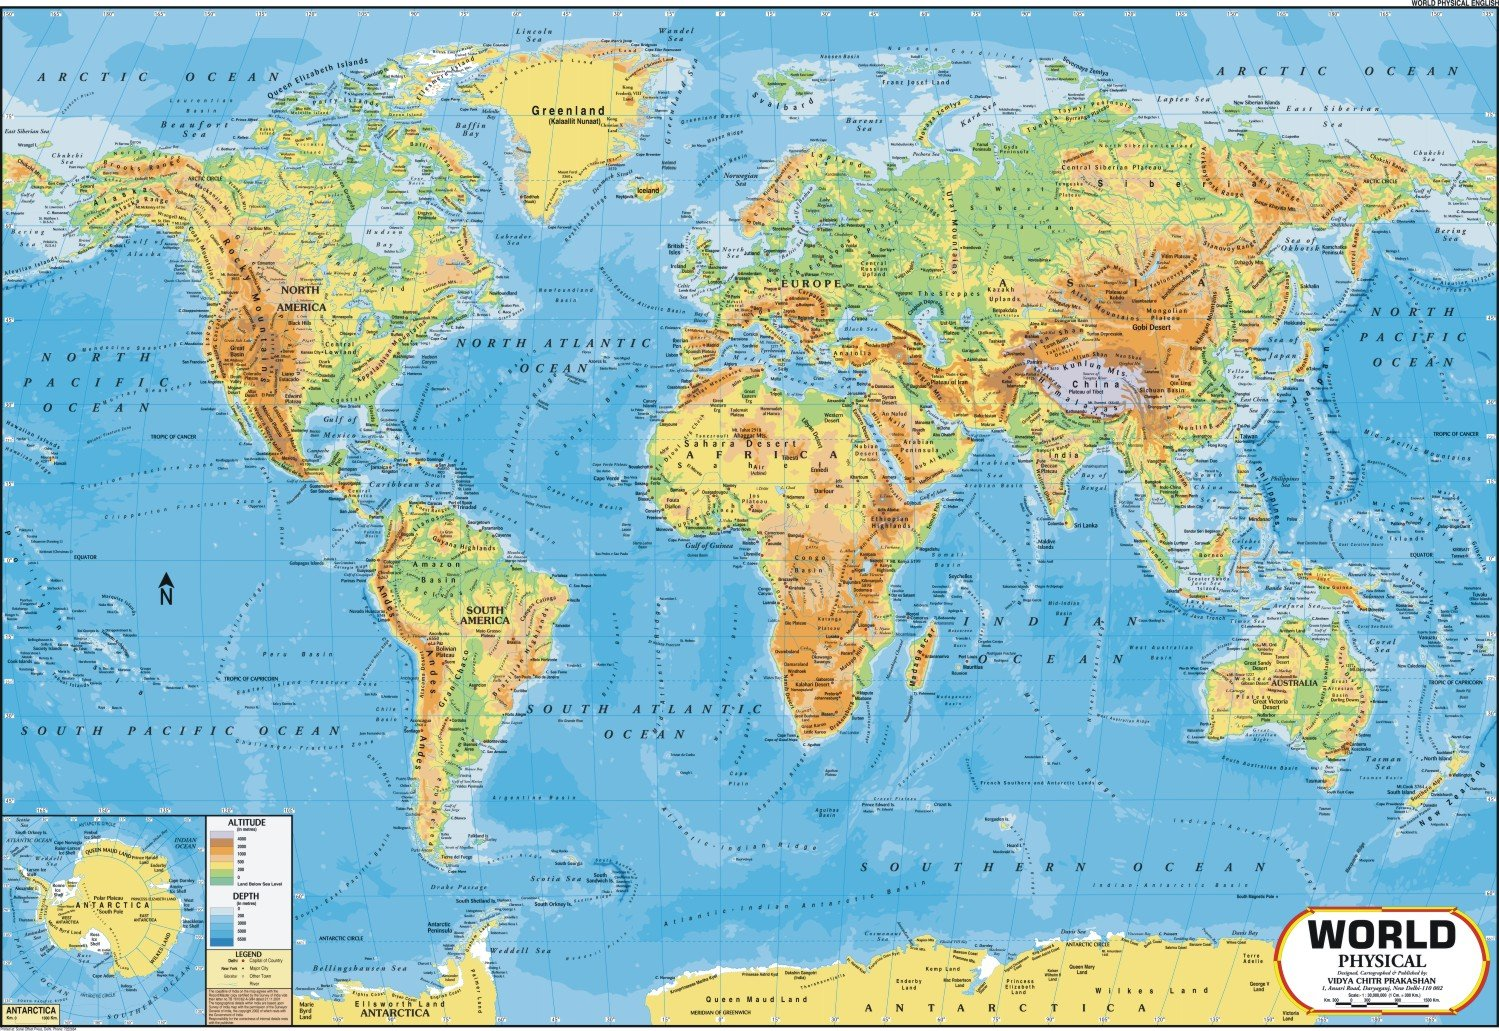 Buy world map physical 100 x 70 cm book online at low prices buy world map physical 100 x 70 cm book online at low prices in india world map physical 100 x 70 cm reviews ratings amazon gumiabroncs Image collections